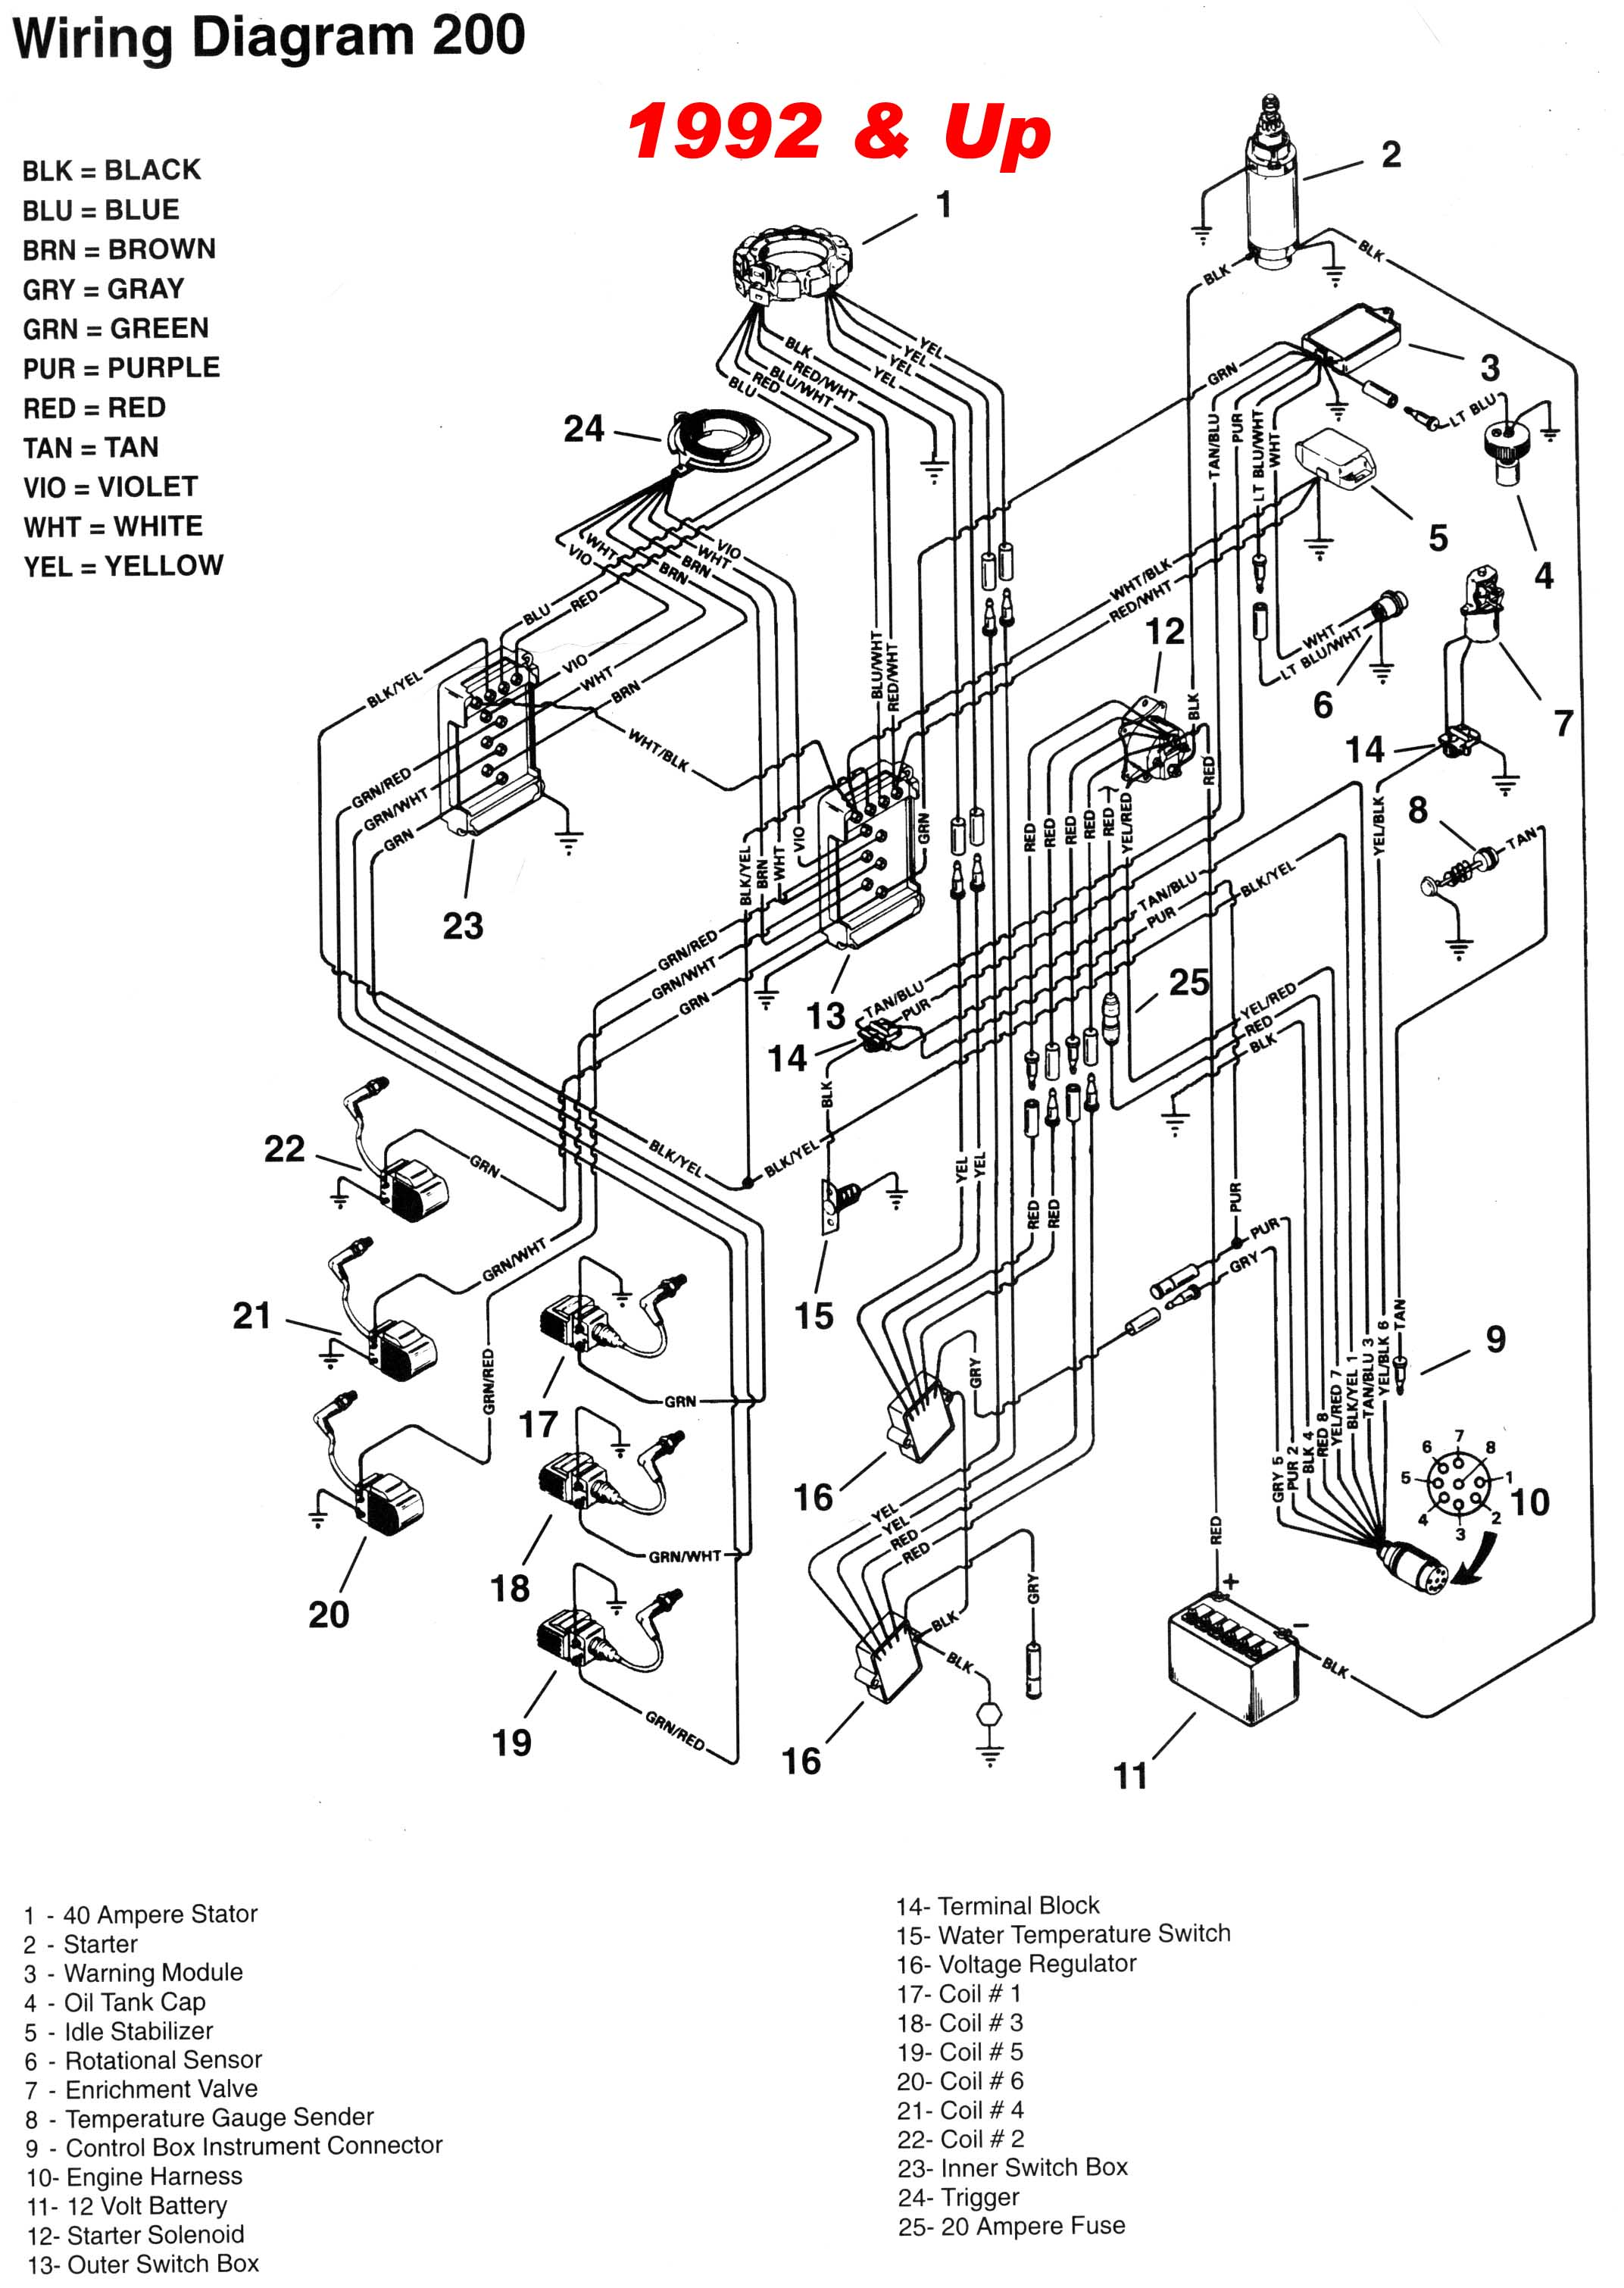 1995 mercury outboard 115 hp wiring diagram